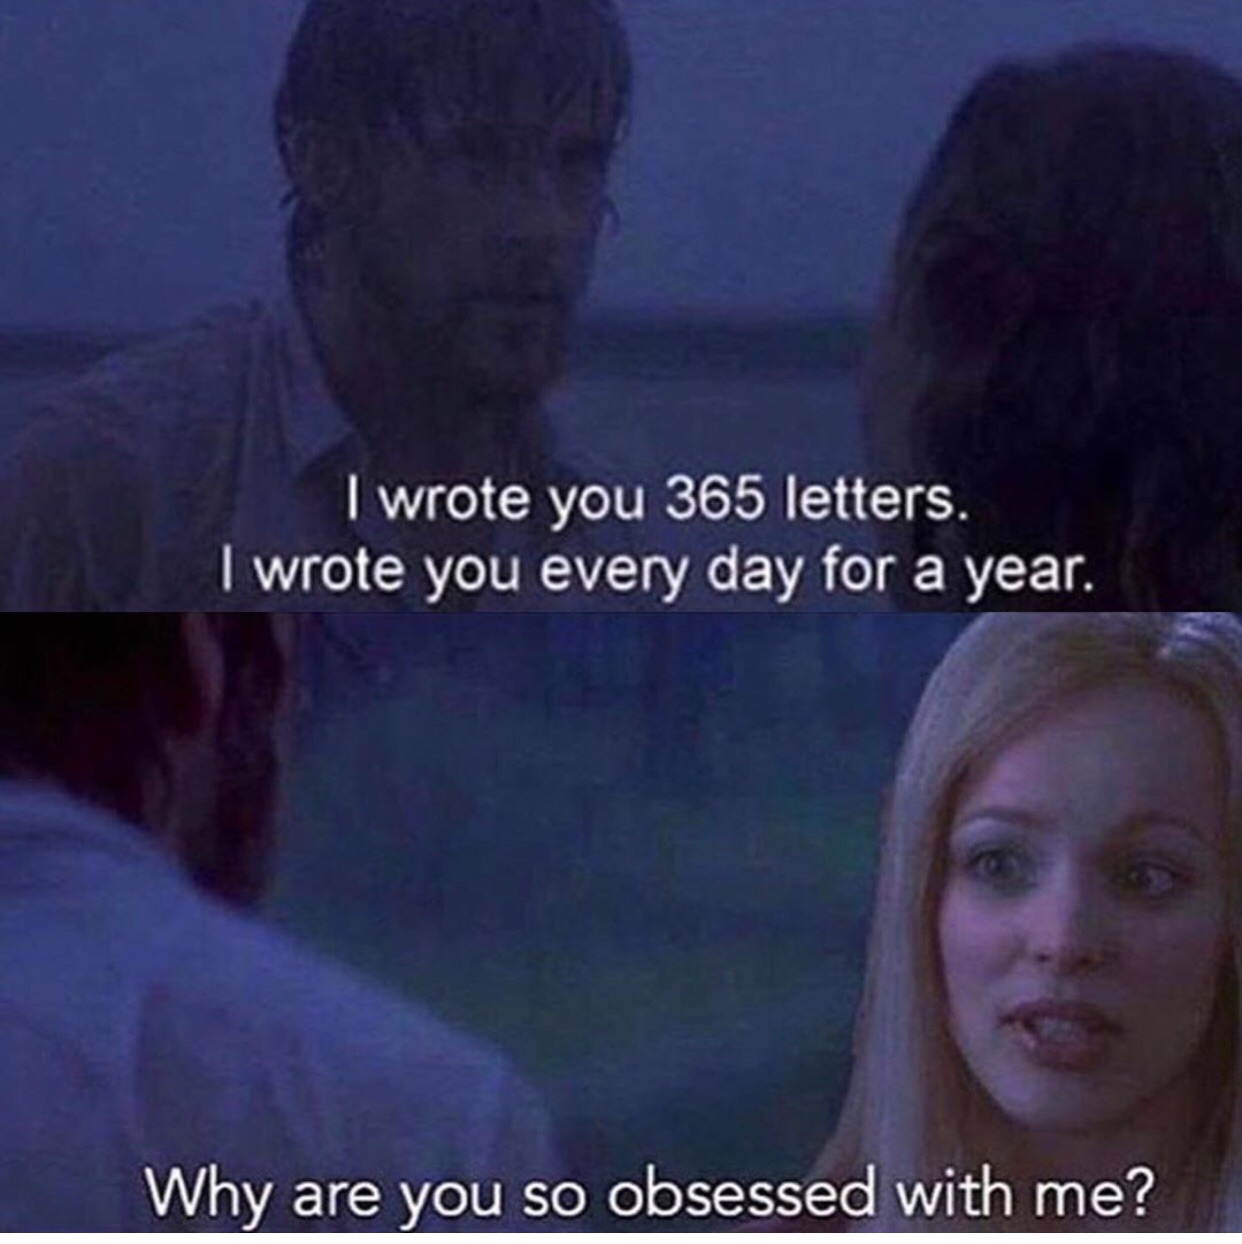 """Meme shows a still from The Notebook, where the character of Noah (Ryan Gosling) tells Allie (Rachel McAdams), """"I wrote you 365 letters. I wrote you every day for a year."""" In the next shot, the character of Regina George from Mean Girls is Photoshopped in, asking """"Why are you so obsessed with me?"""""""